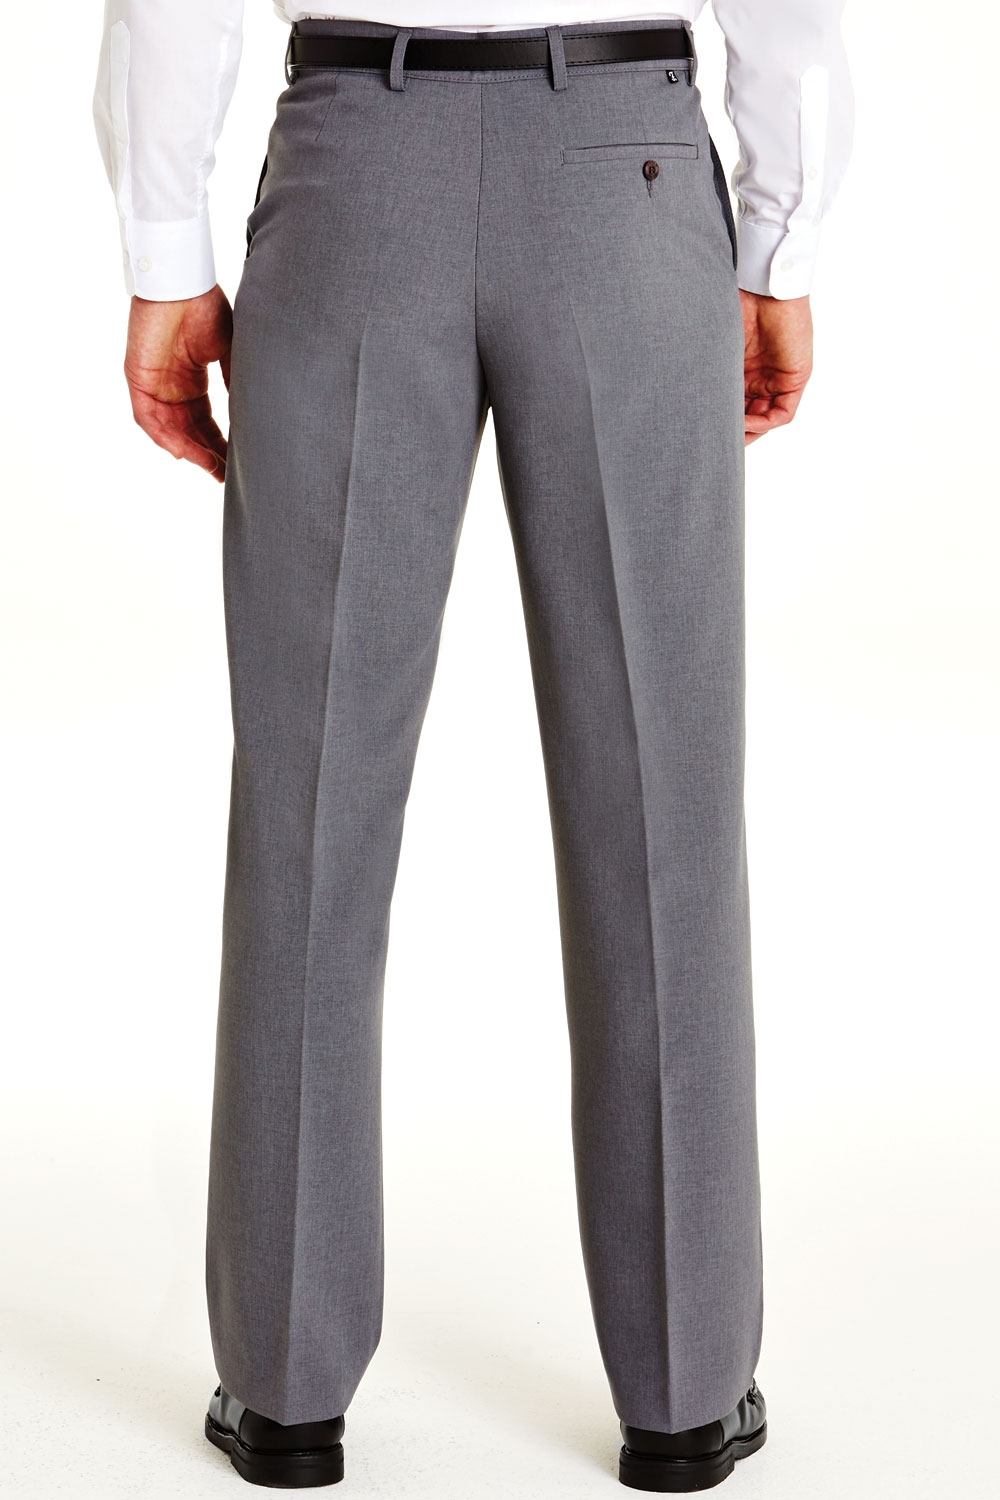 Mens-Farah-Slant-Pocket-Formal-Classic-Trouser-Pants thumbnail 19